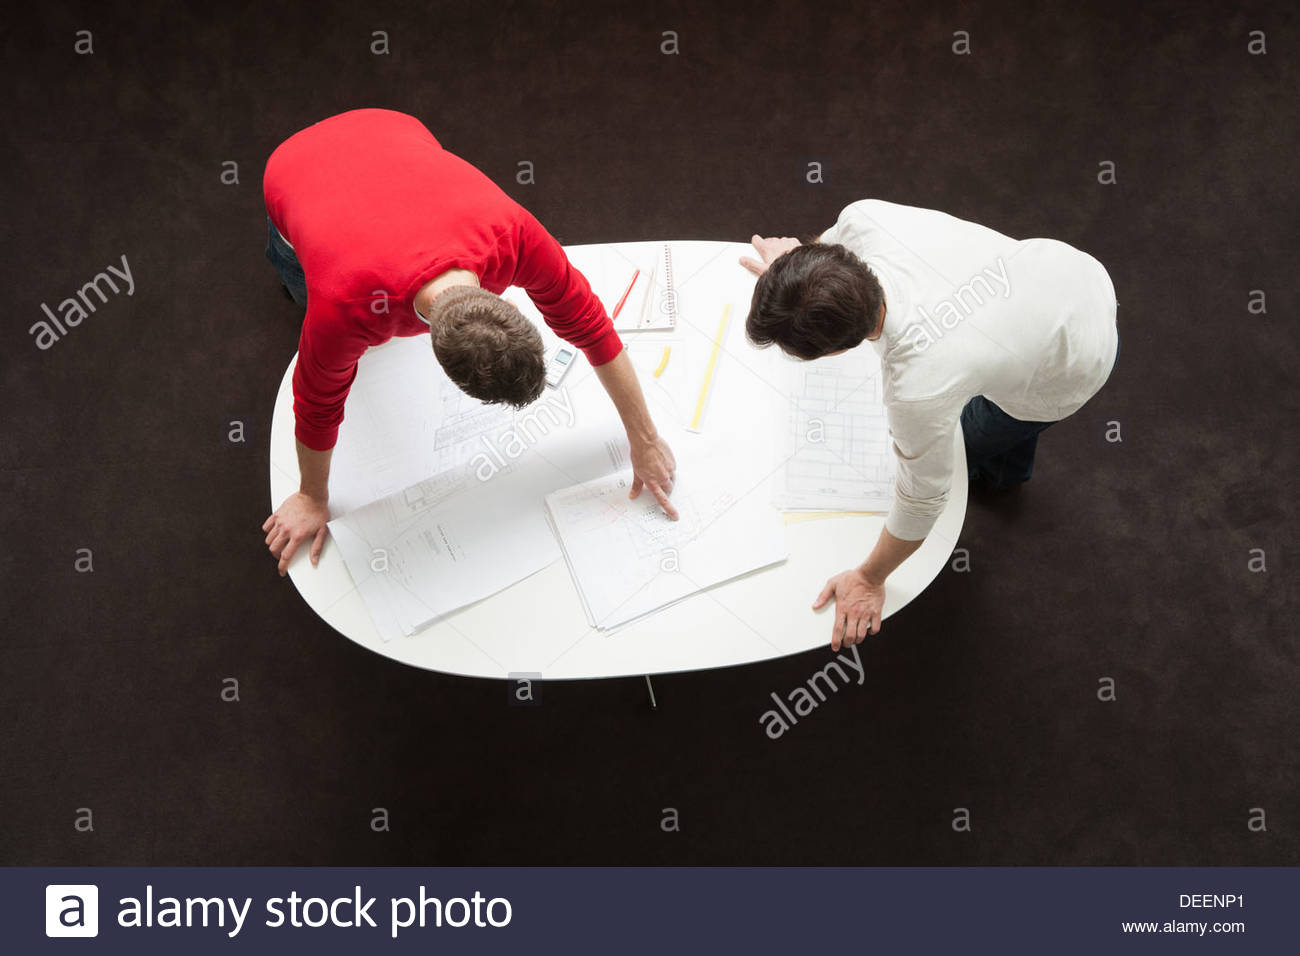 Two businessmen leaning over a table with drafts and paperwork - Stock Image